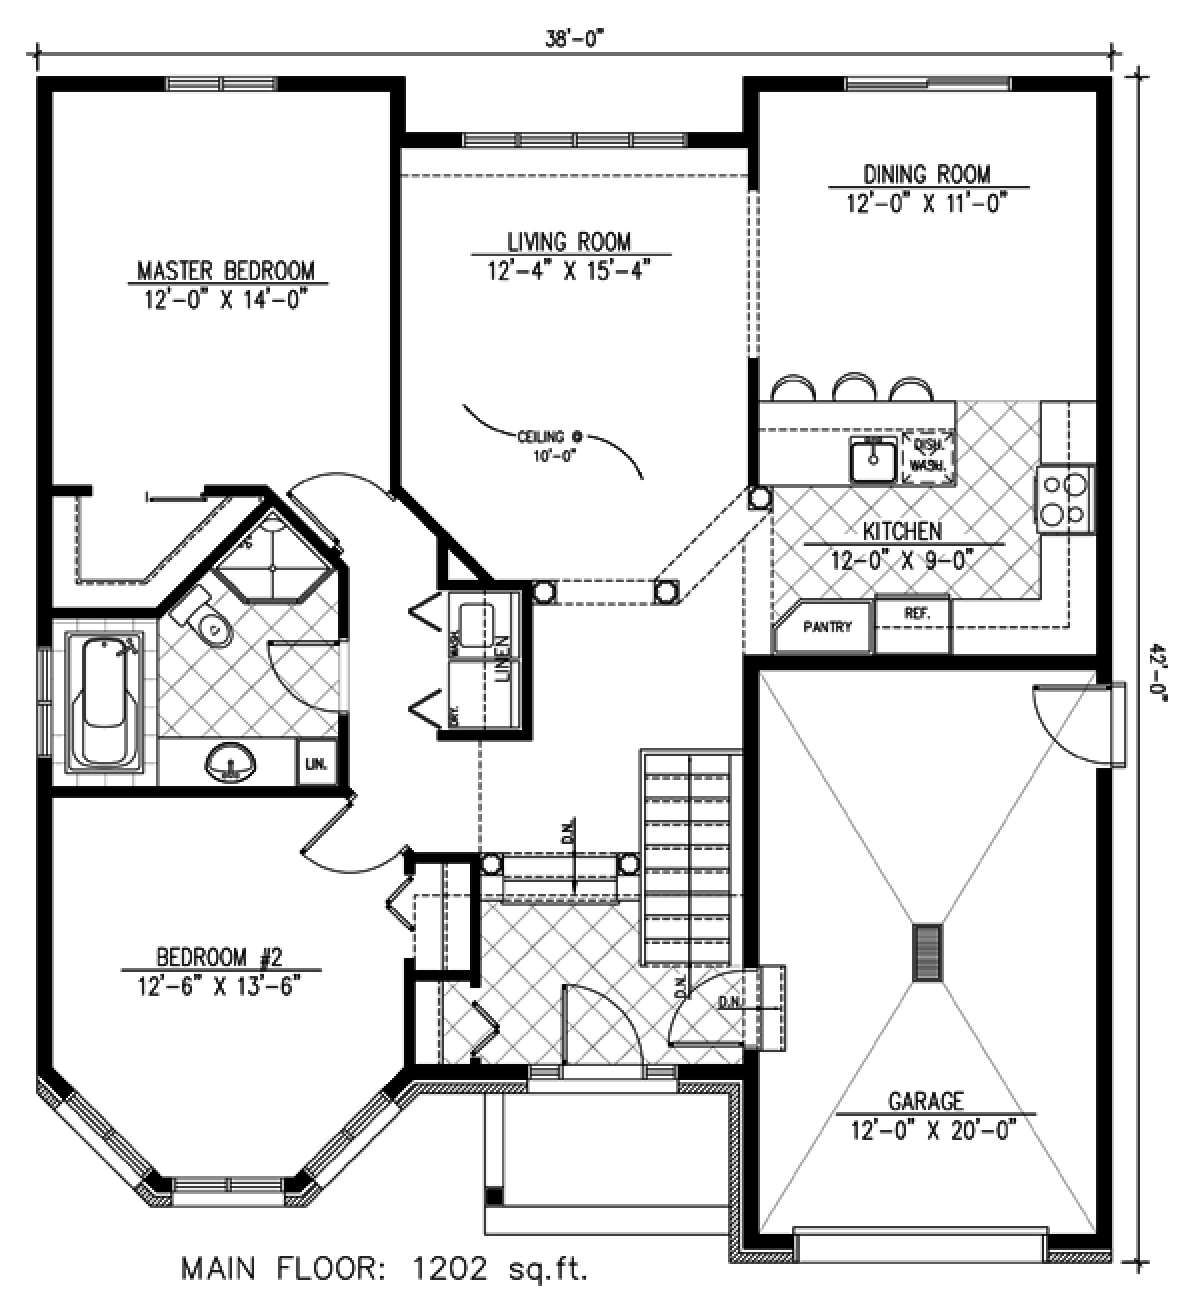 House Plan 1785 00157 European Plan 1 202 Square Feet 2 Bedrooms 1 Bathroom In 2021 House Plans Best House Plans Bungalow House Plans